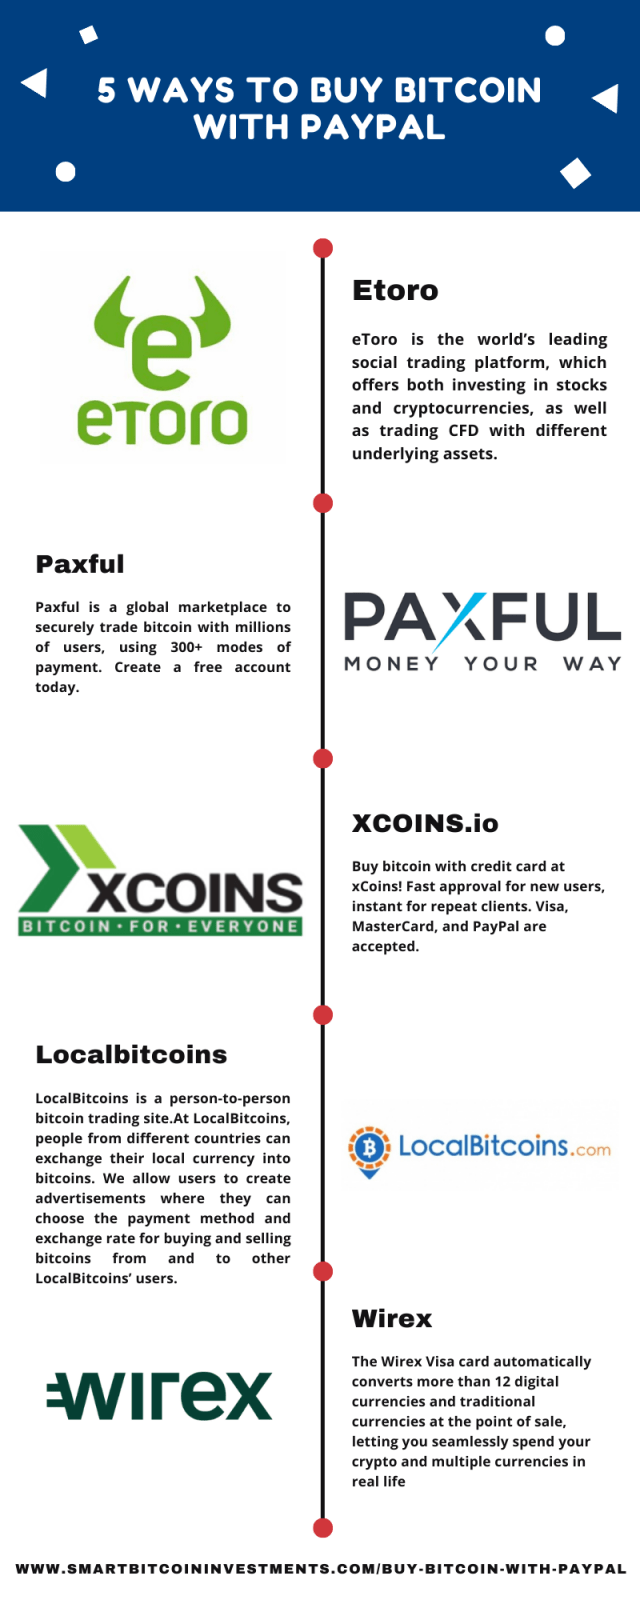 5 Ways To Buy Bitcoin With PayPal Infographic